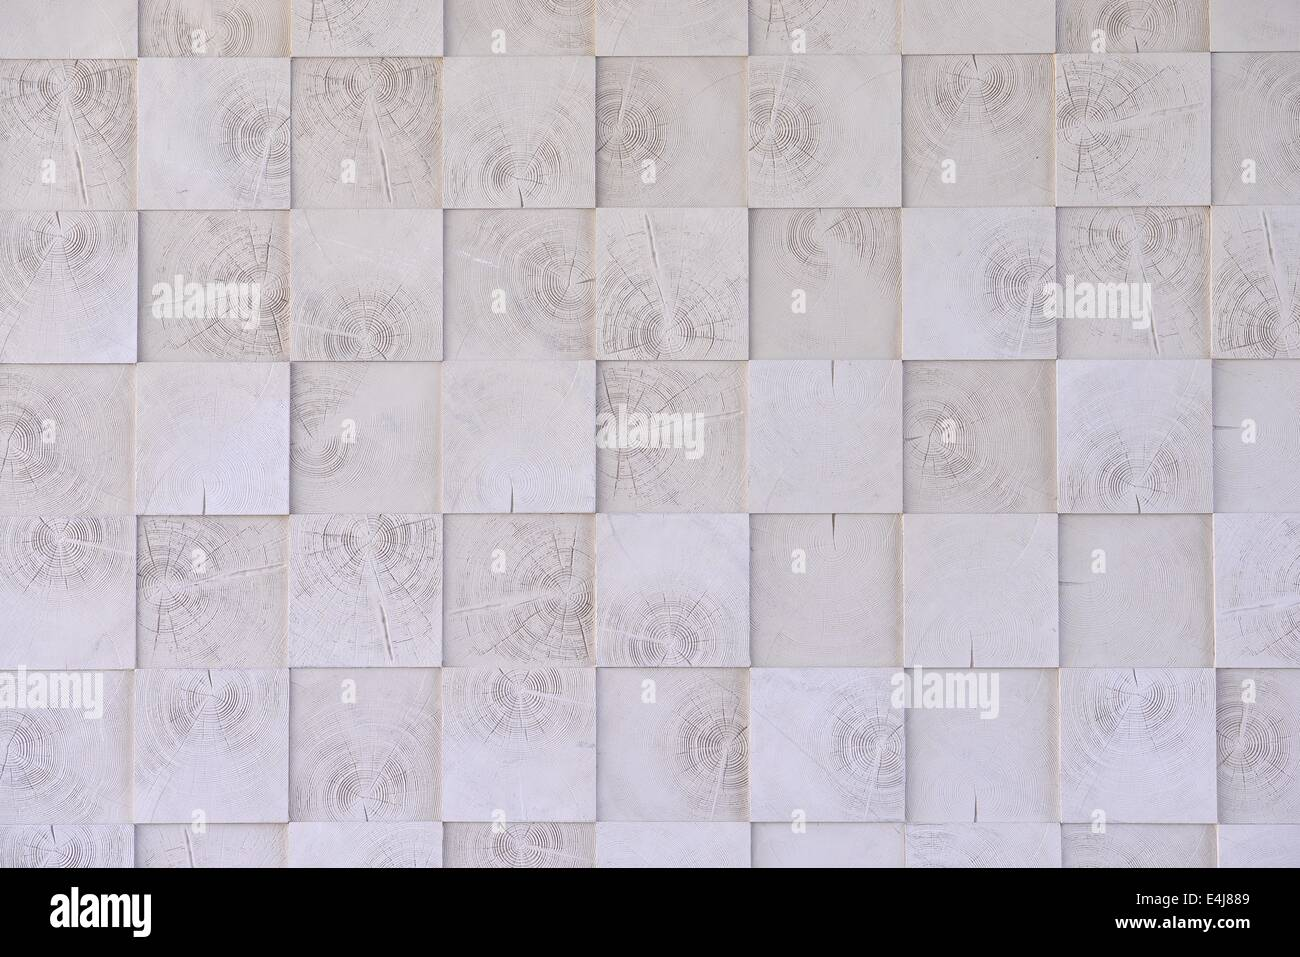 Wall Tile Background - Stock Image